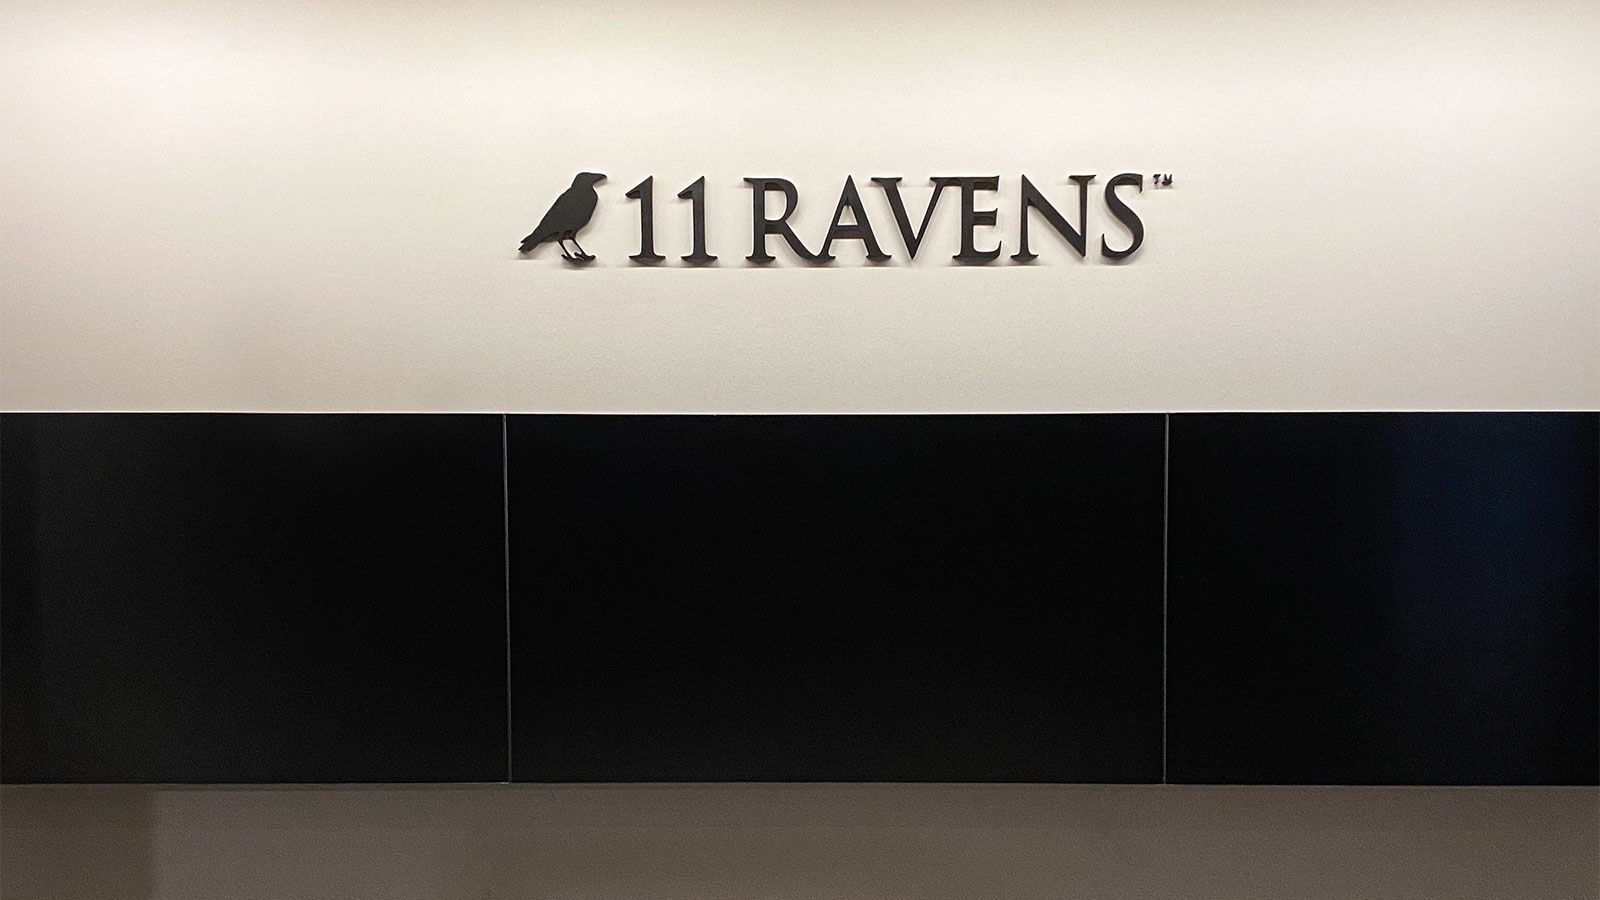 11 Ravens 3d acrylic letters and logo sign painted in black color for billiards supply store office interior branding